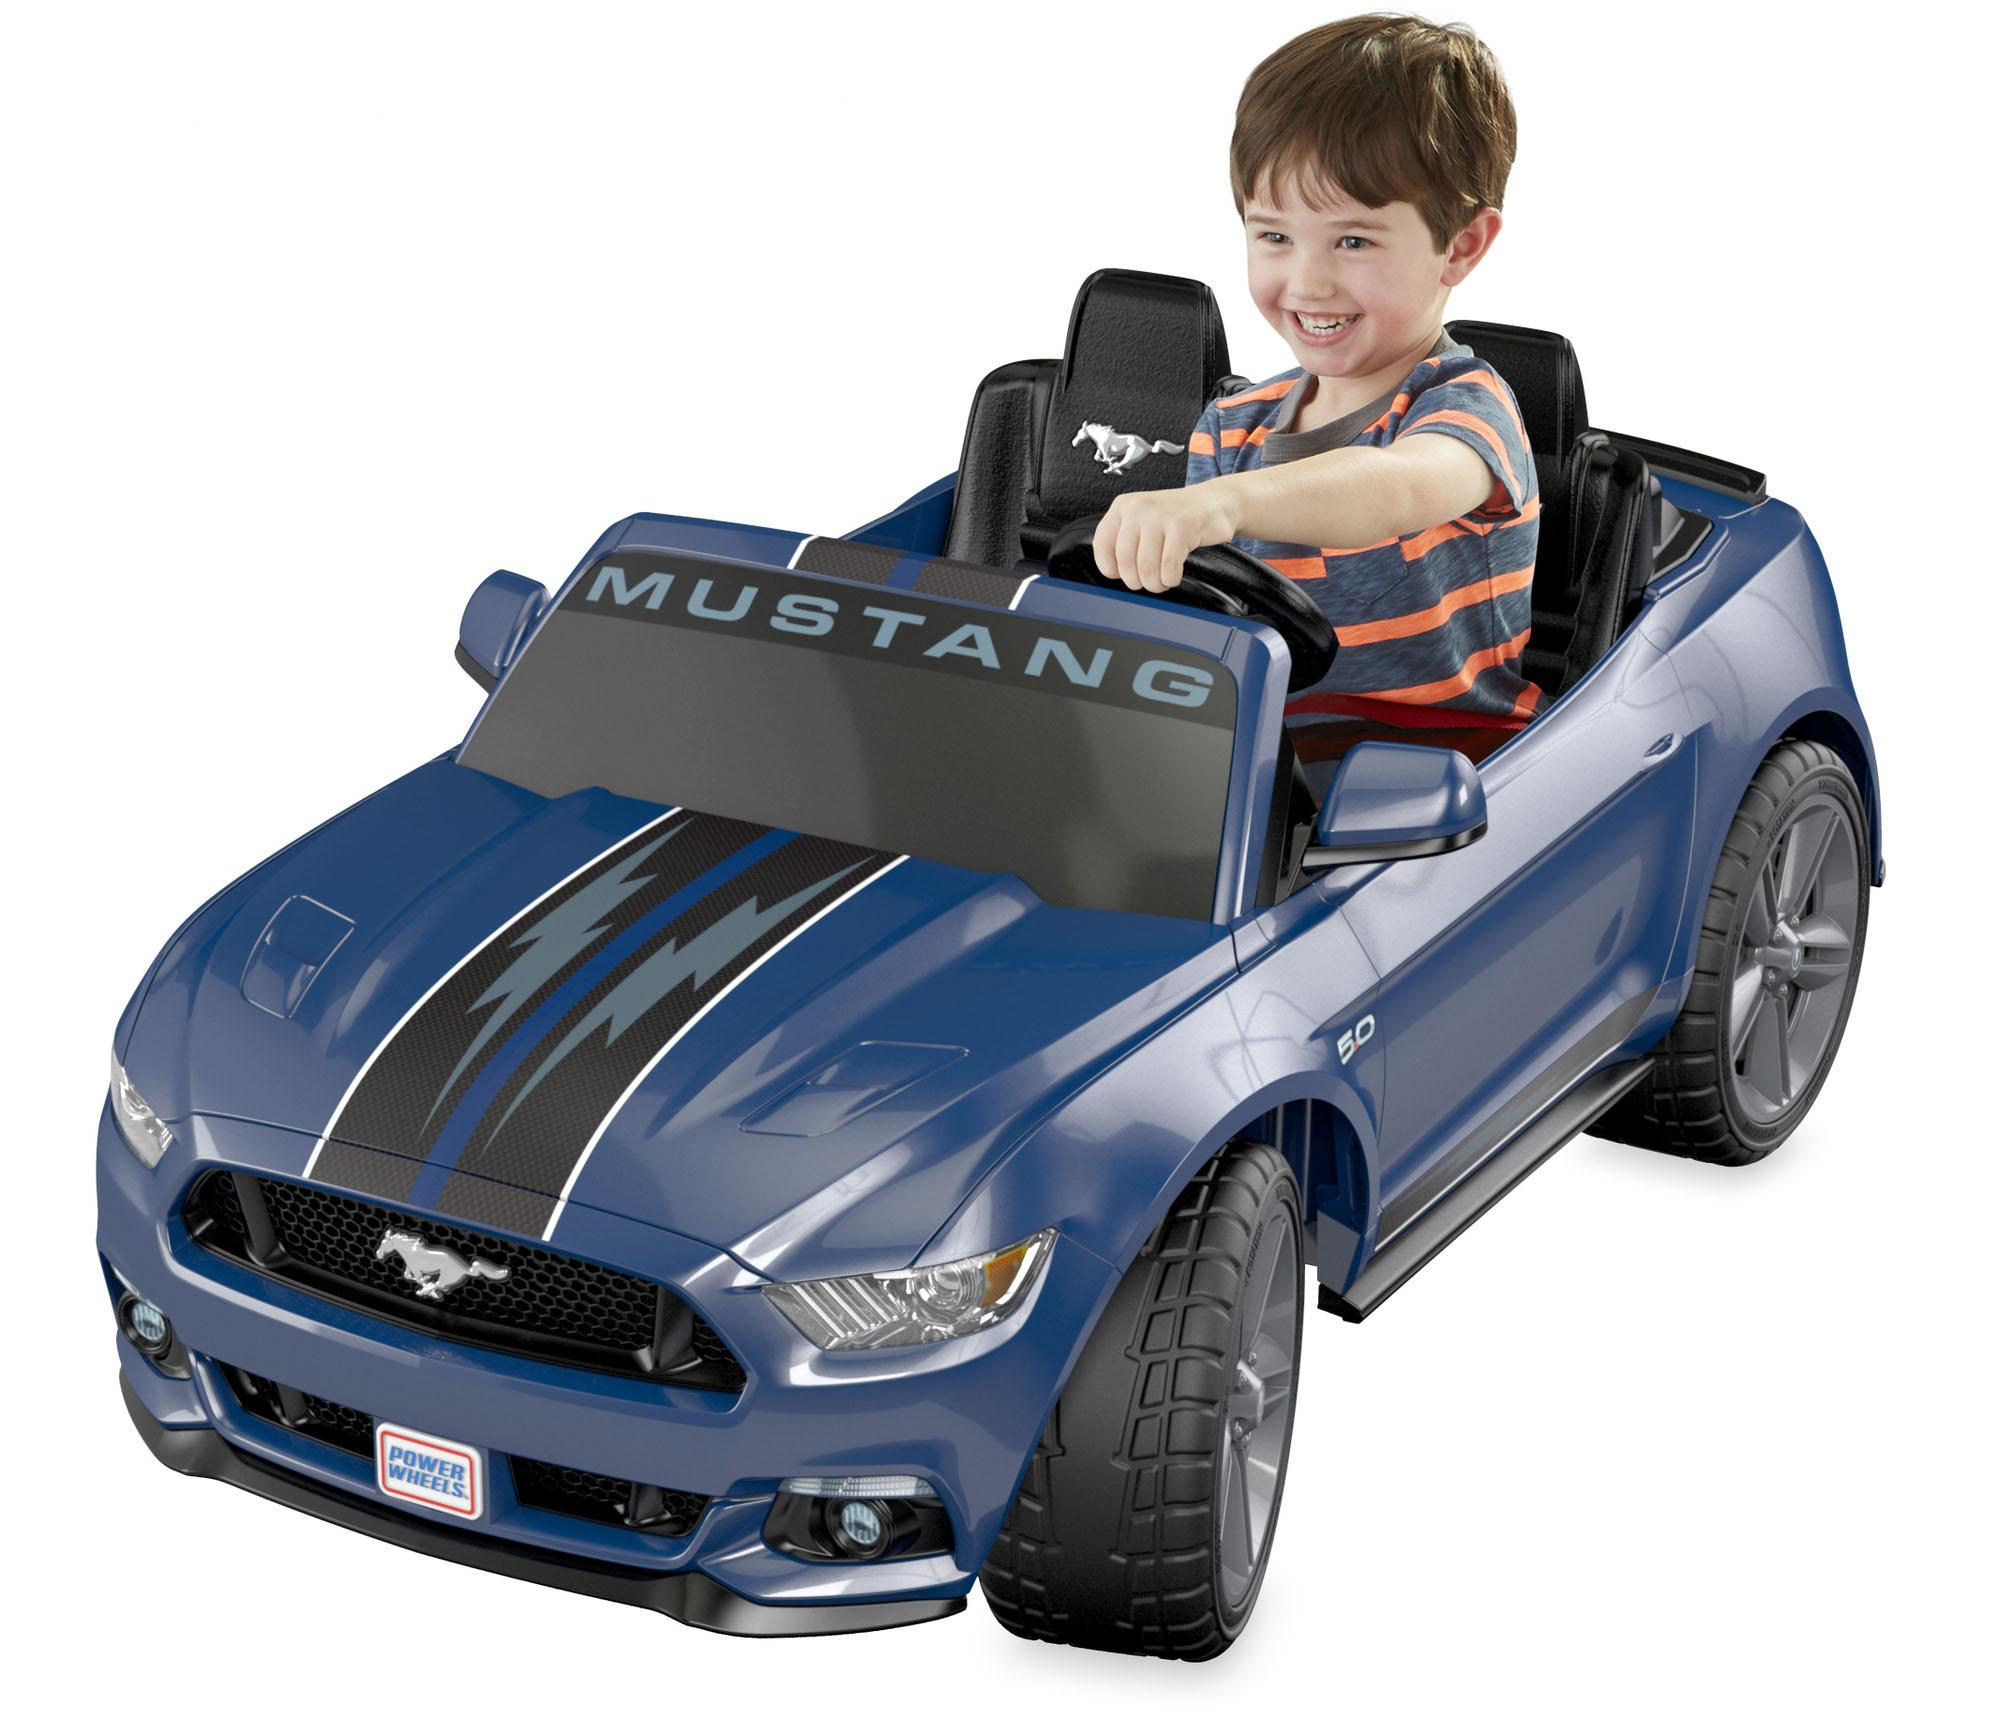 Amazon.com: Power Wheels Ford Mustang, Blue Smart Drive